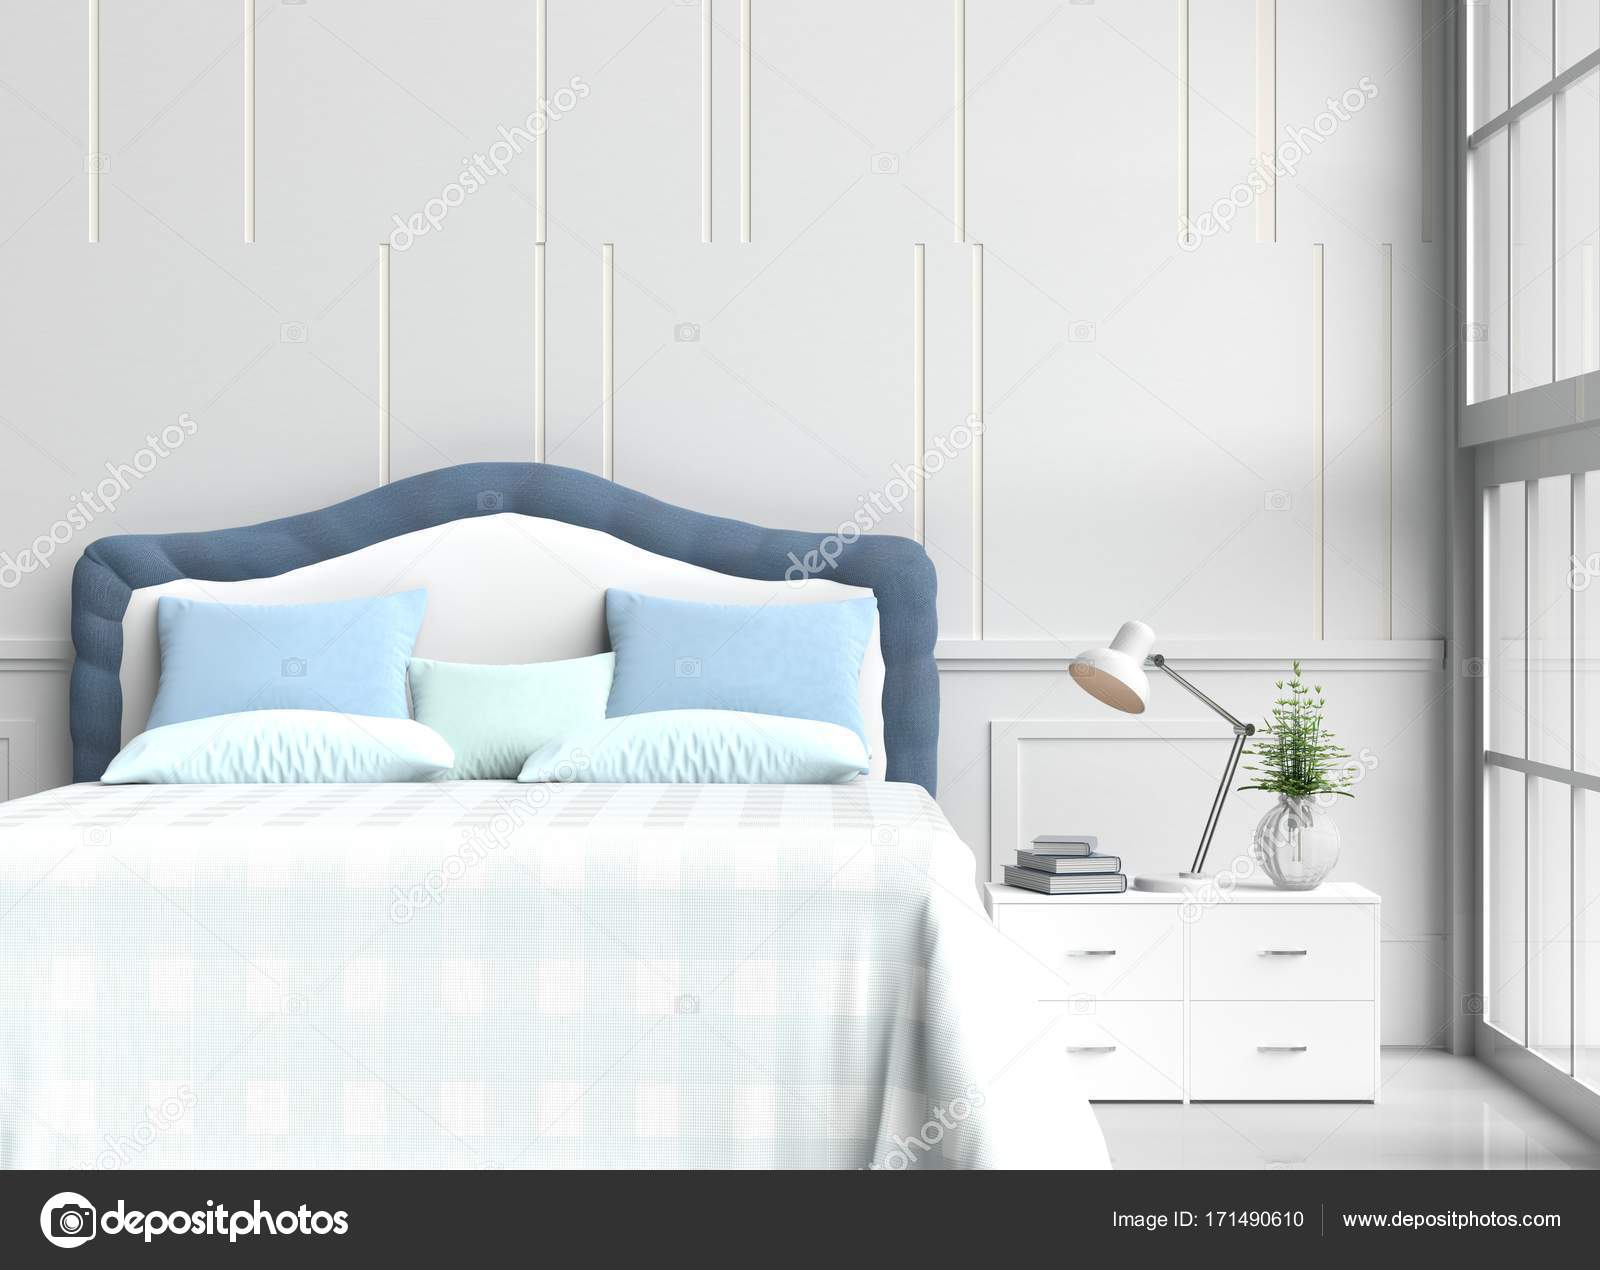 https://st3.depositphotos.com/12406876/17149/i/1600/depositphotos_171490610-stock-photo-white-bed-room-decorated-with.jpg